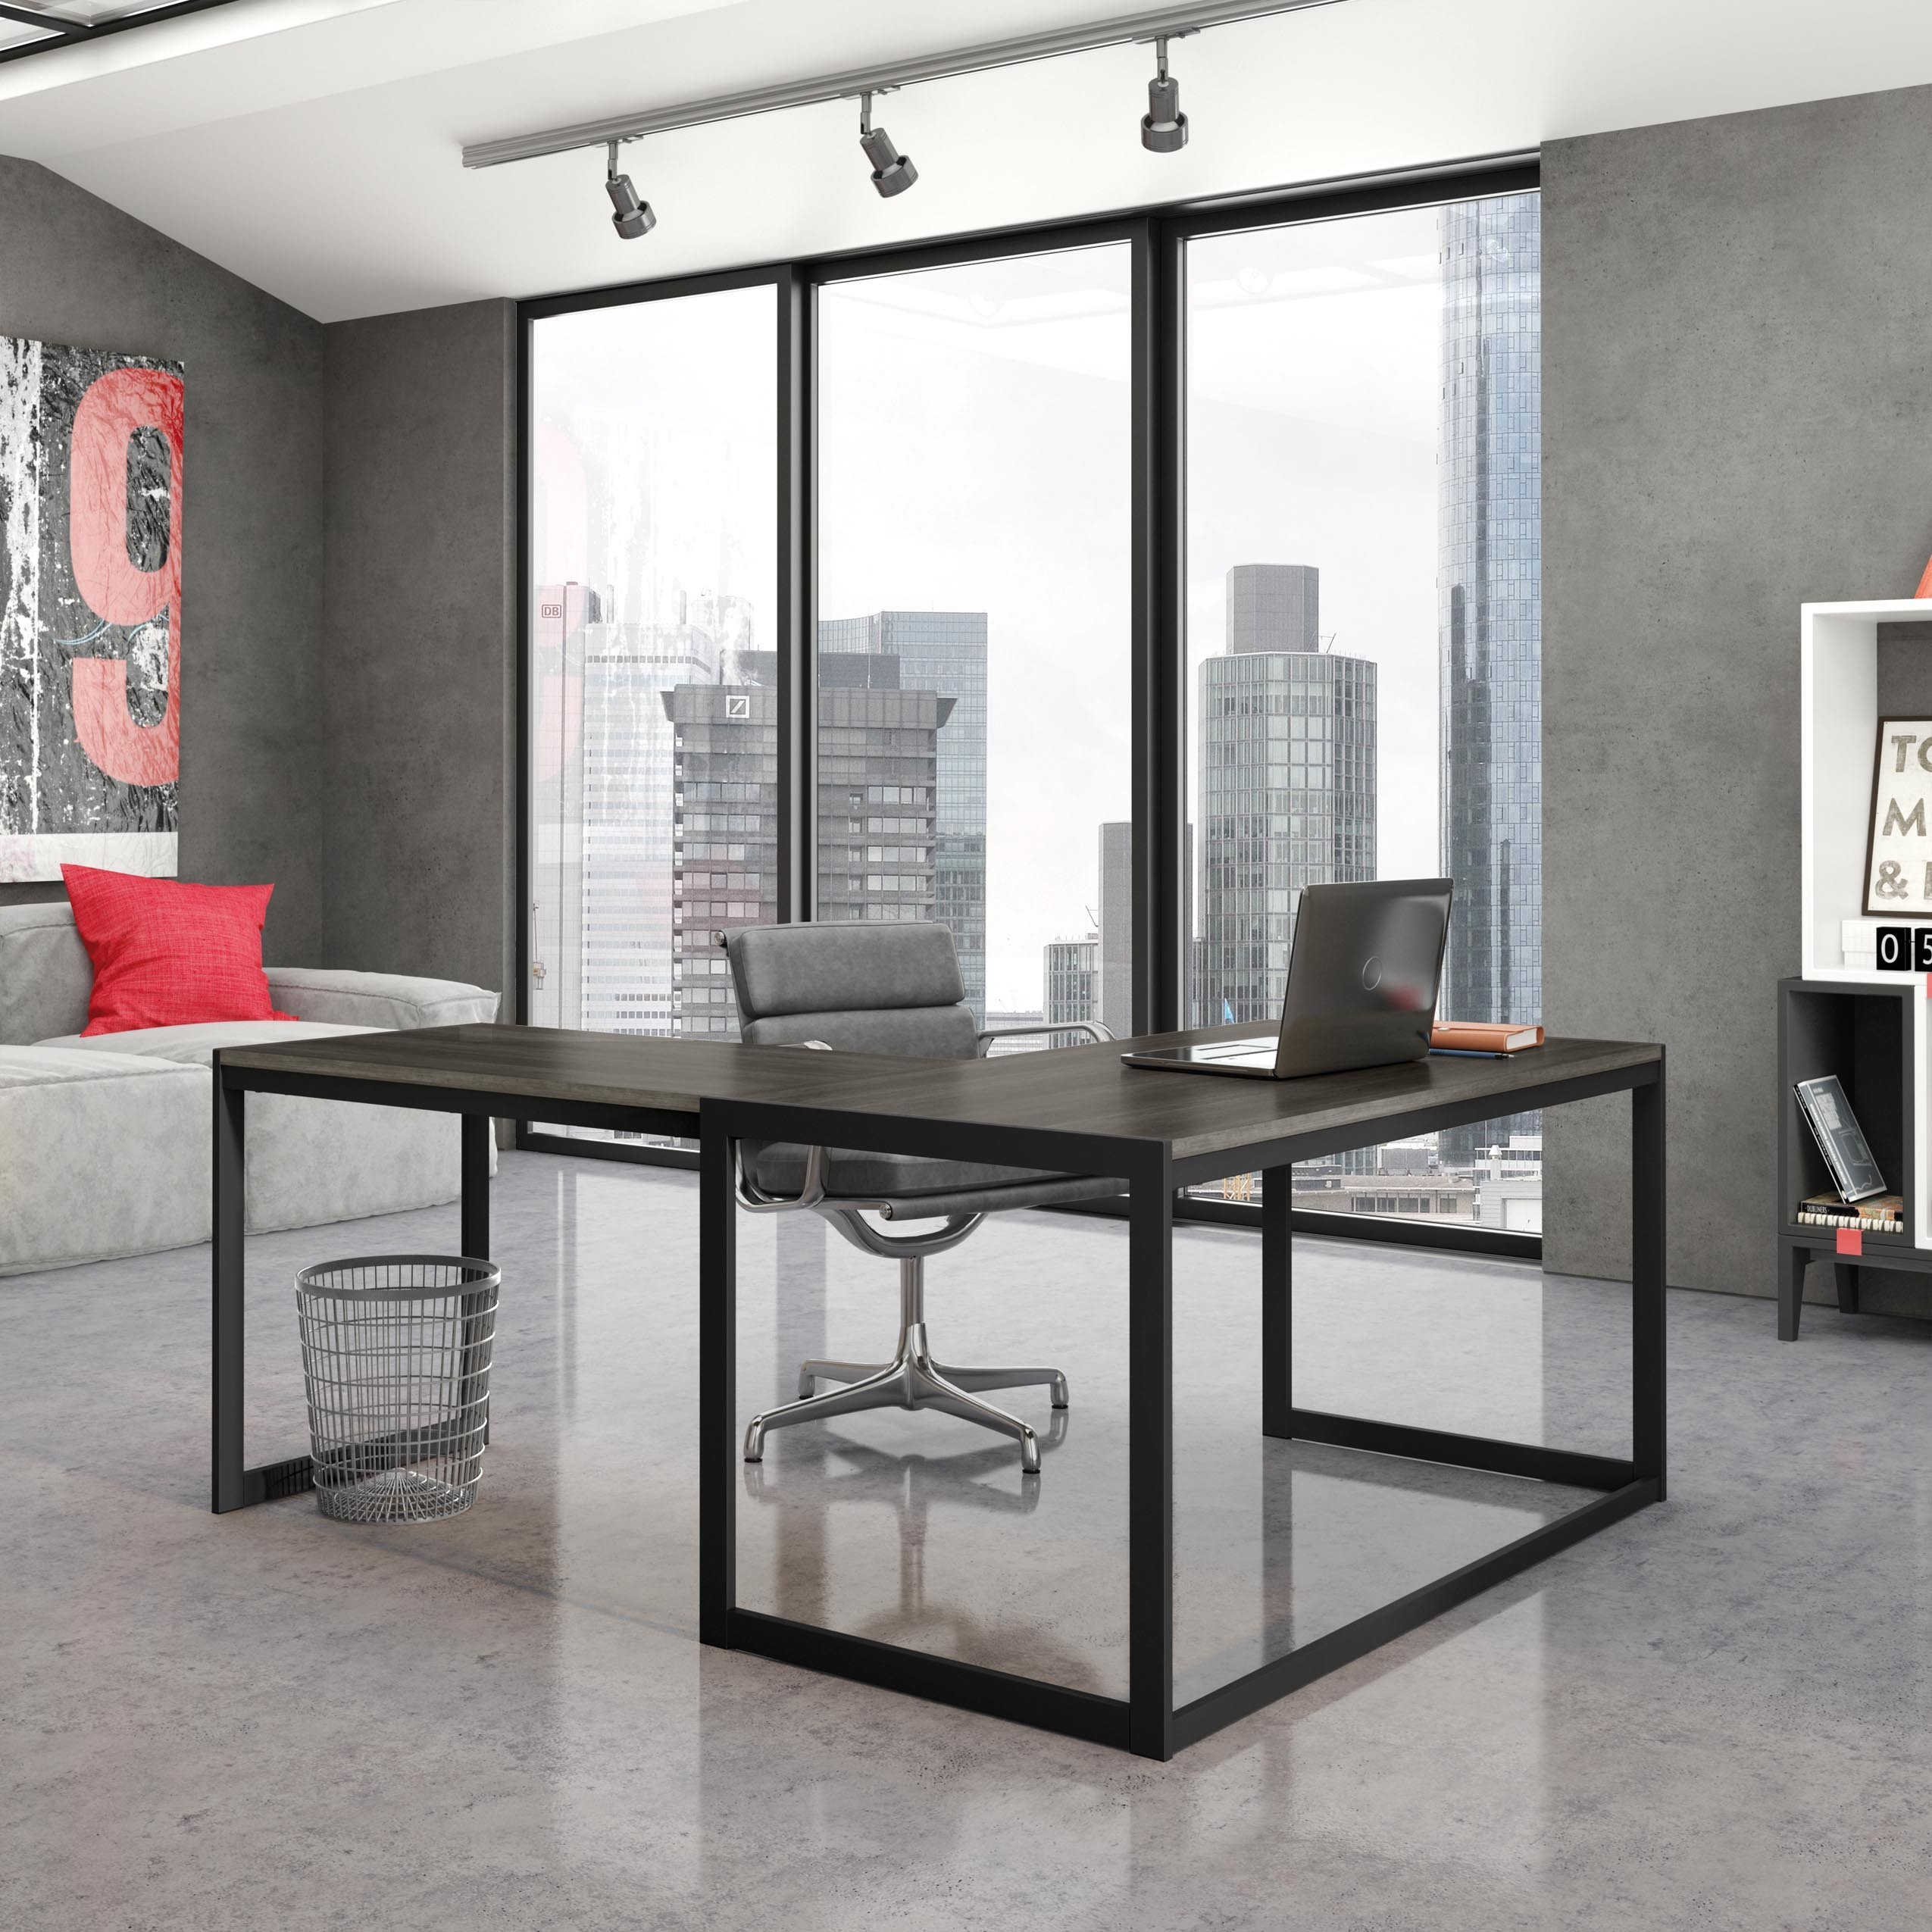 office furniture and design. Design Office Furniture. Furniture Images. Desk Design. Amazing T Images I And M